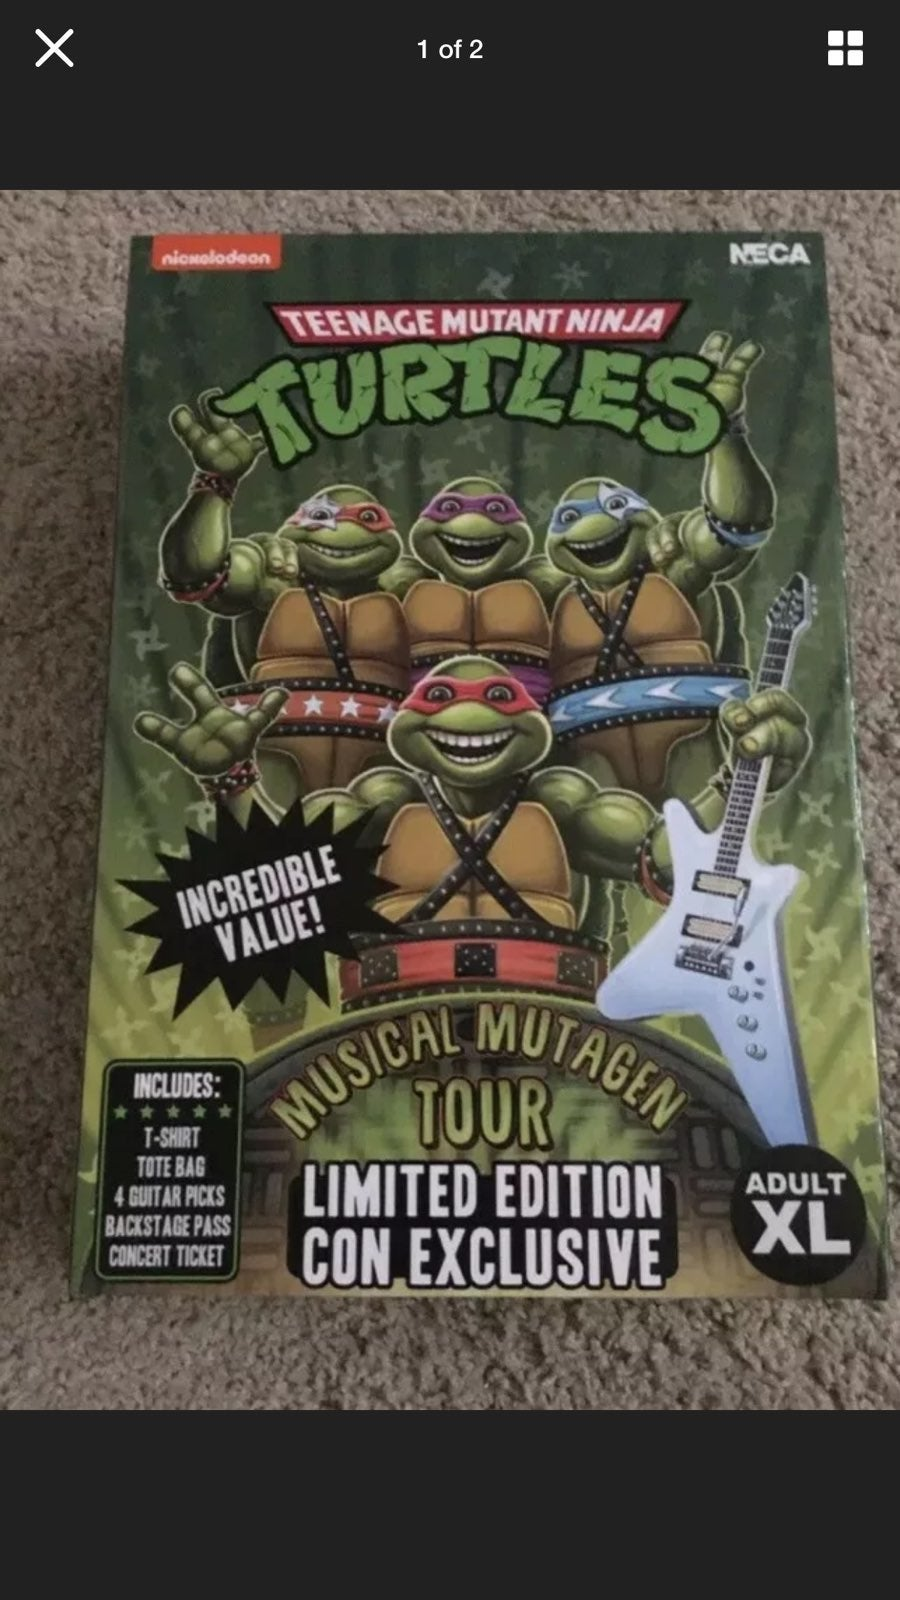 NECA TMNT musical mutagen tour XL